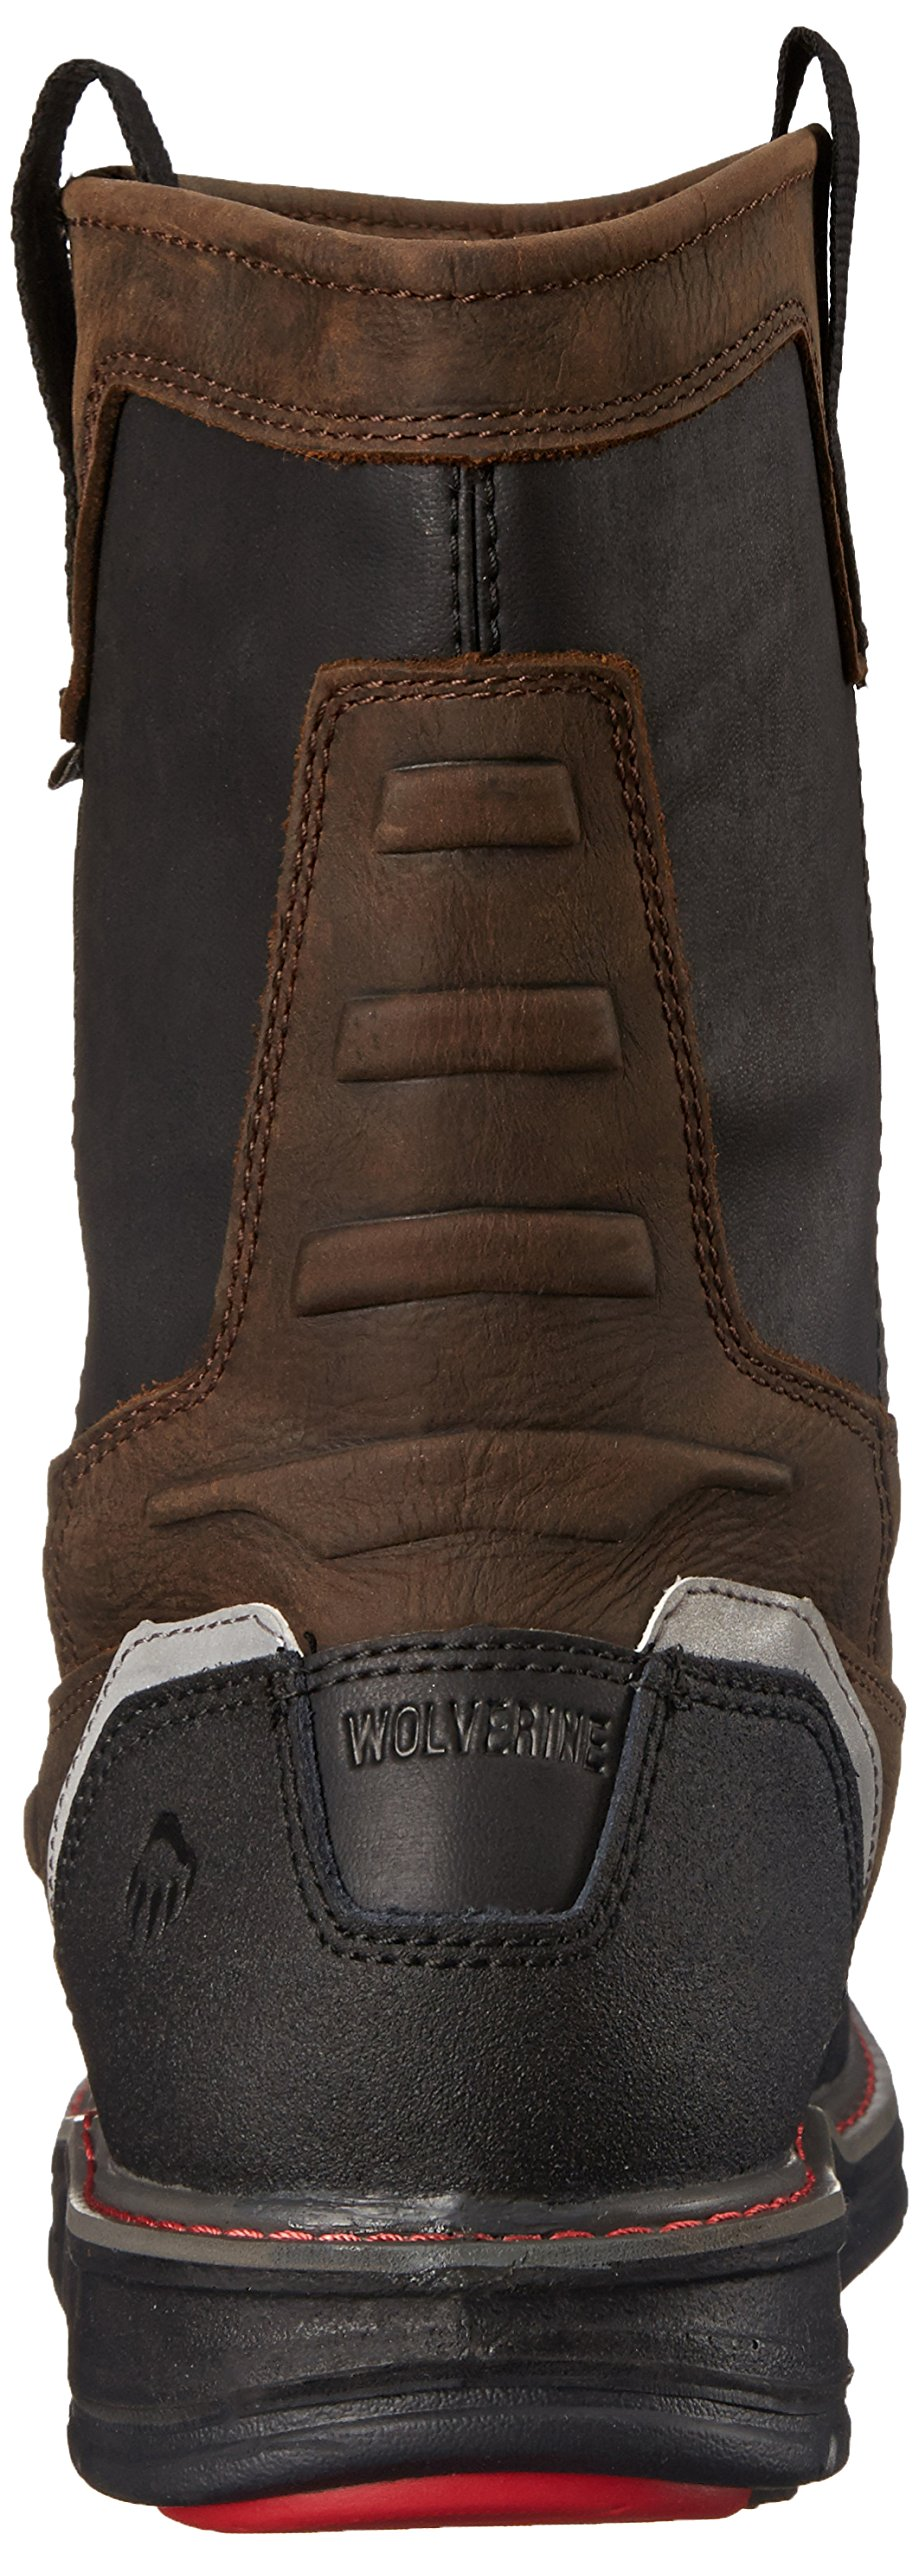 Wolverine Men's Overman Nano Toe 10 Inch WPF Work Boot, Brown/Black, 8.5 M US by Wolverine (Image #2)